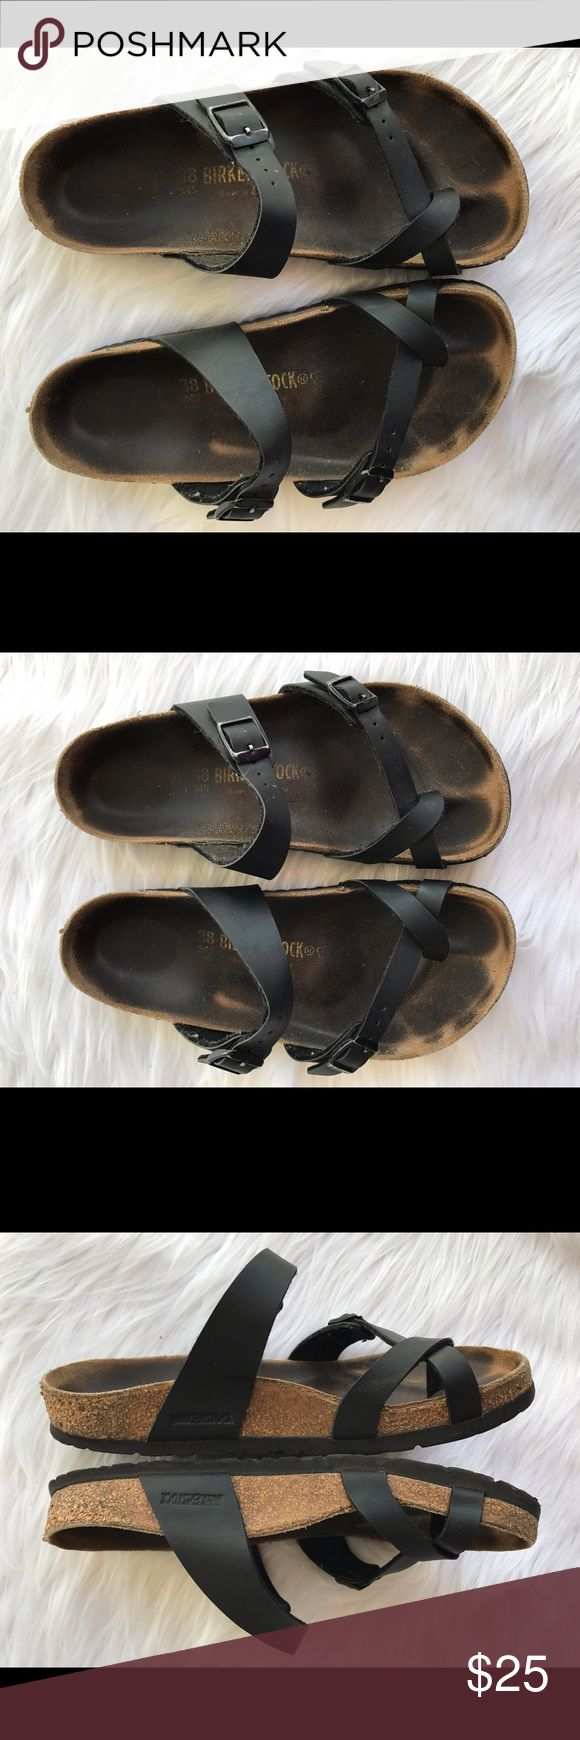 Black Birkenstock Mayari strapy sandals SZ 38 Black Birkenstock Mayari strapy sandals SZ 38 size 7 have been used they still have tons of life left Birkenstock Shoes Sandals